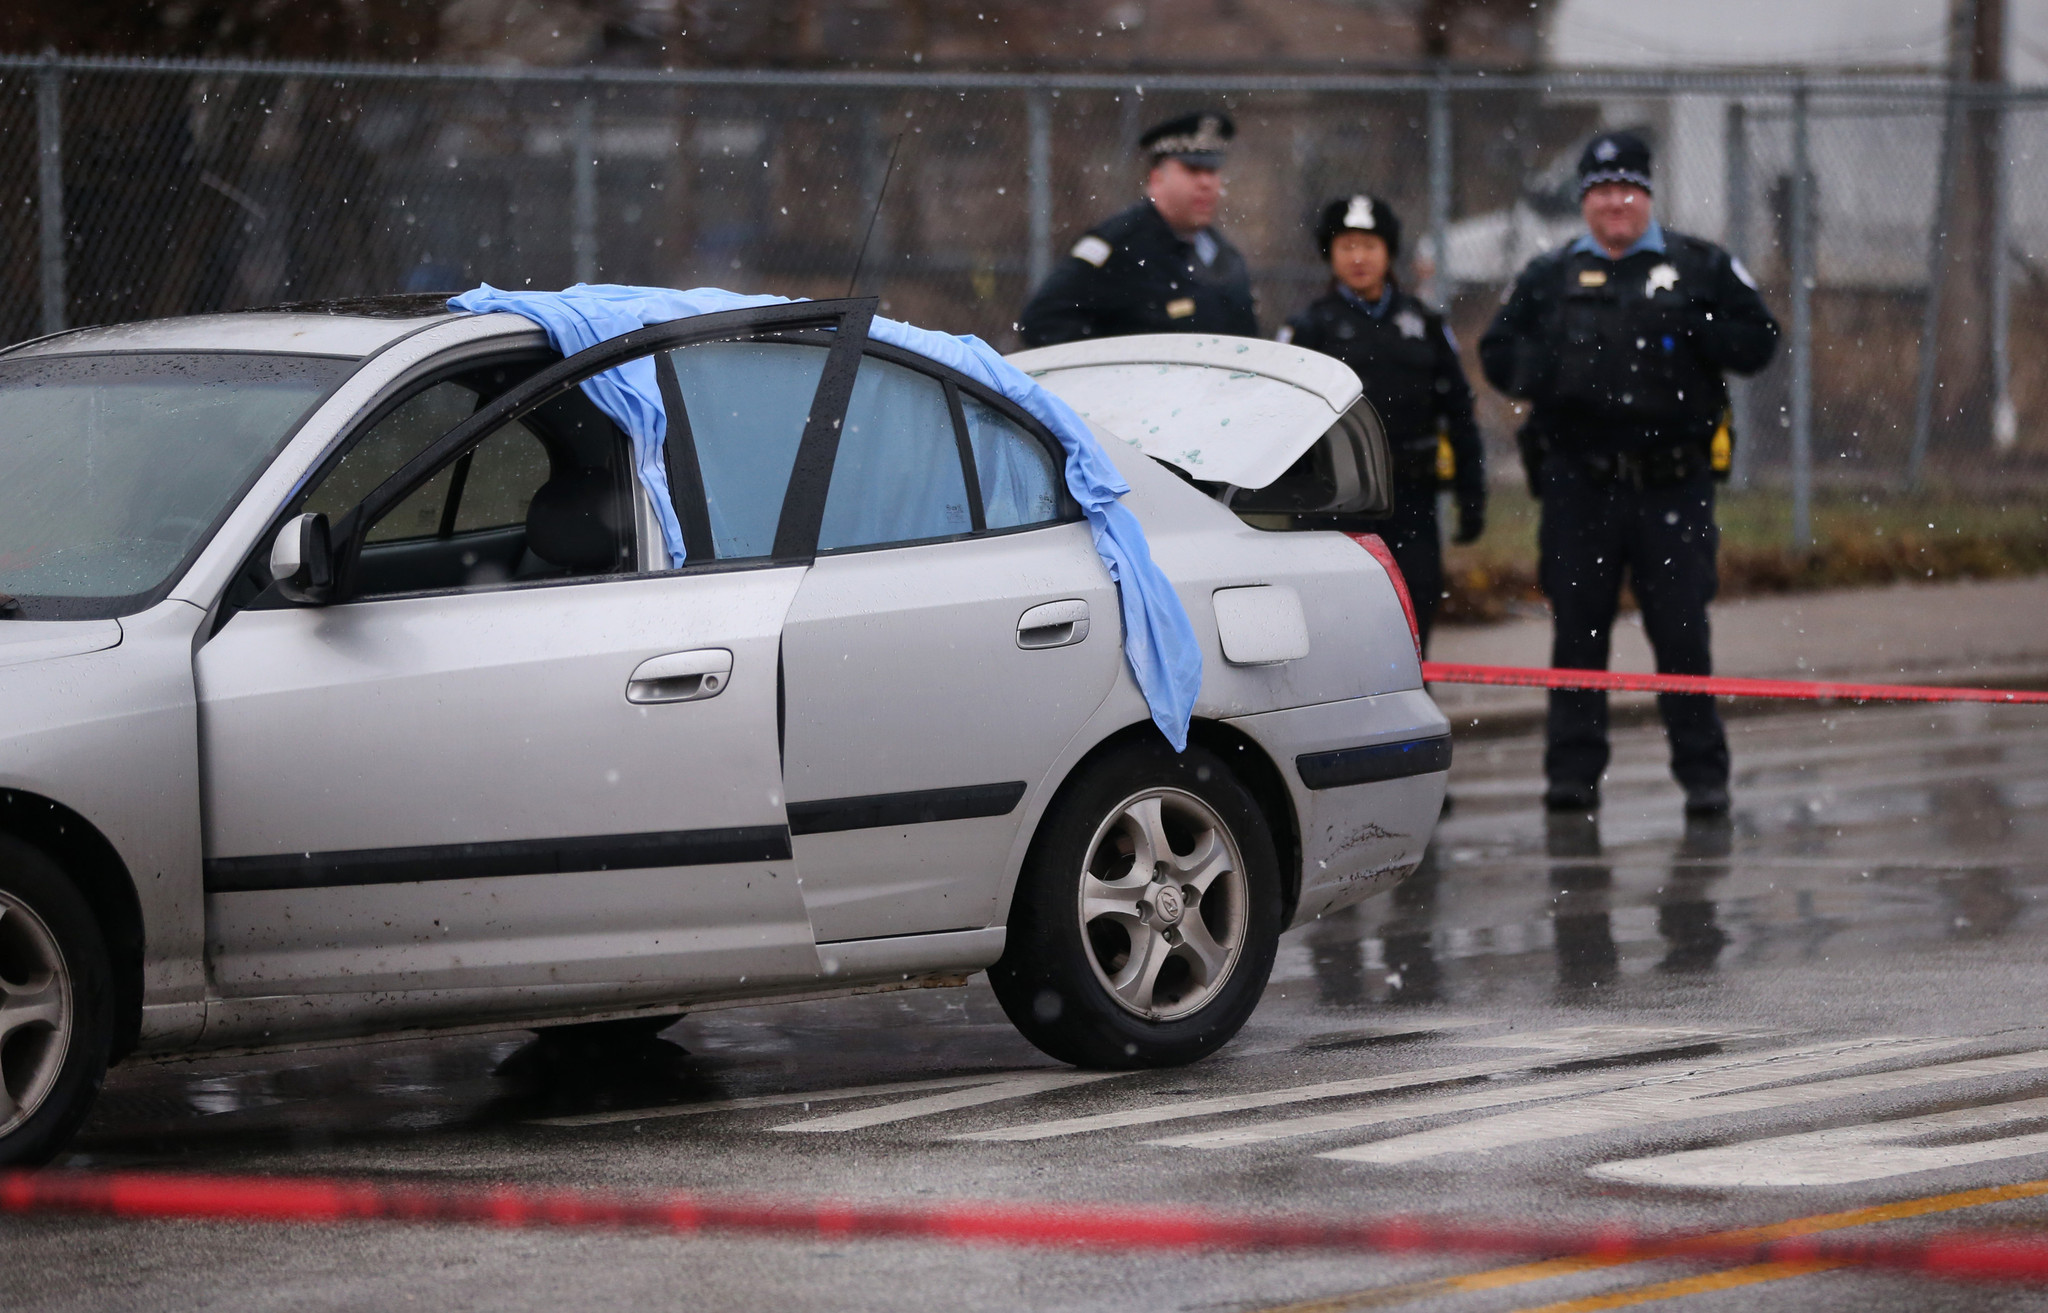 10 days into new year, more than 100 people shot in Chicago